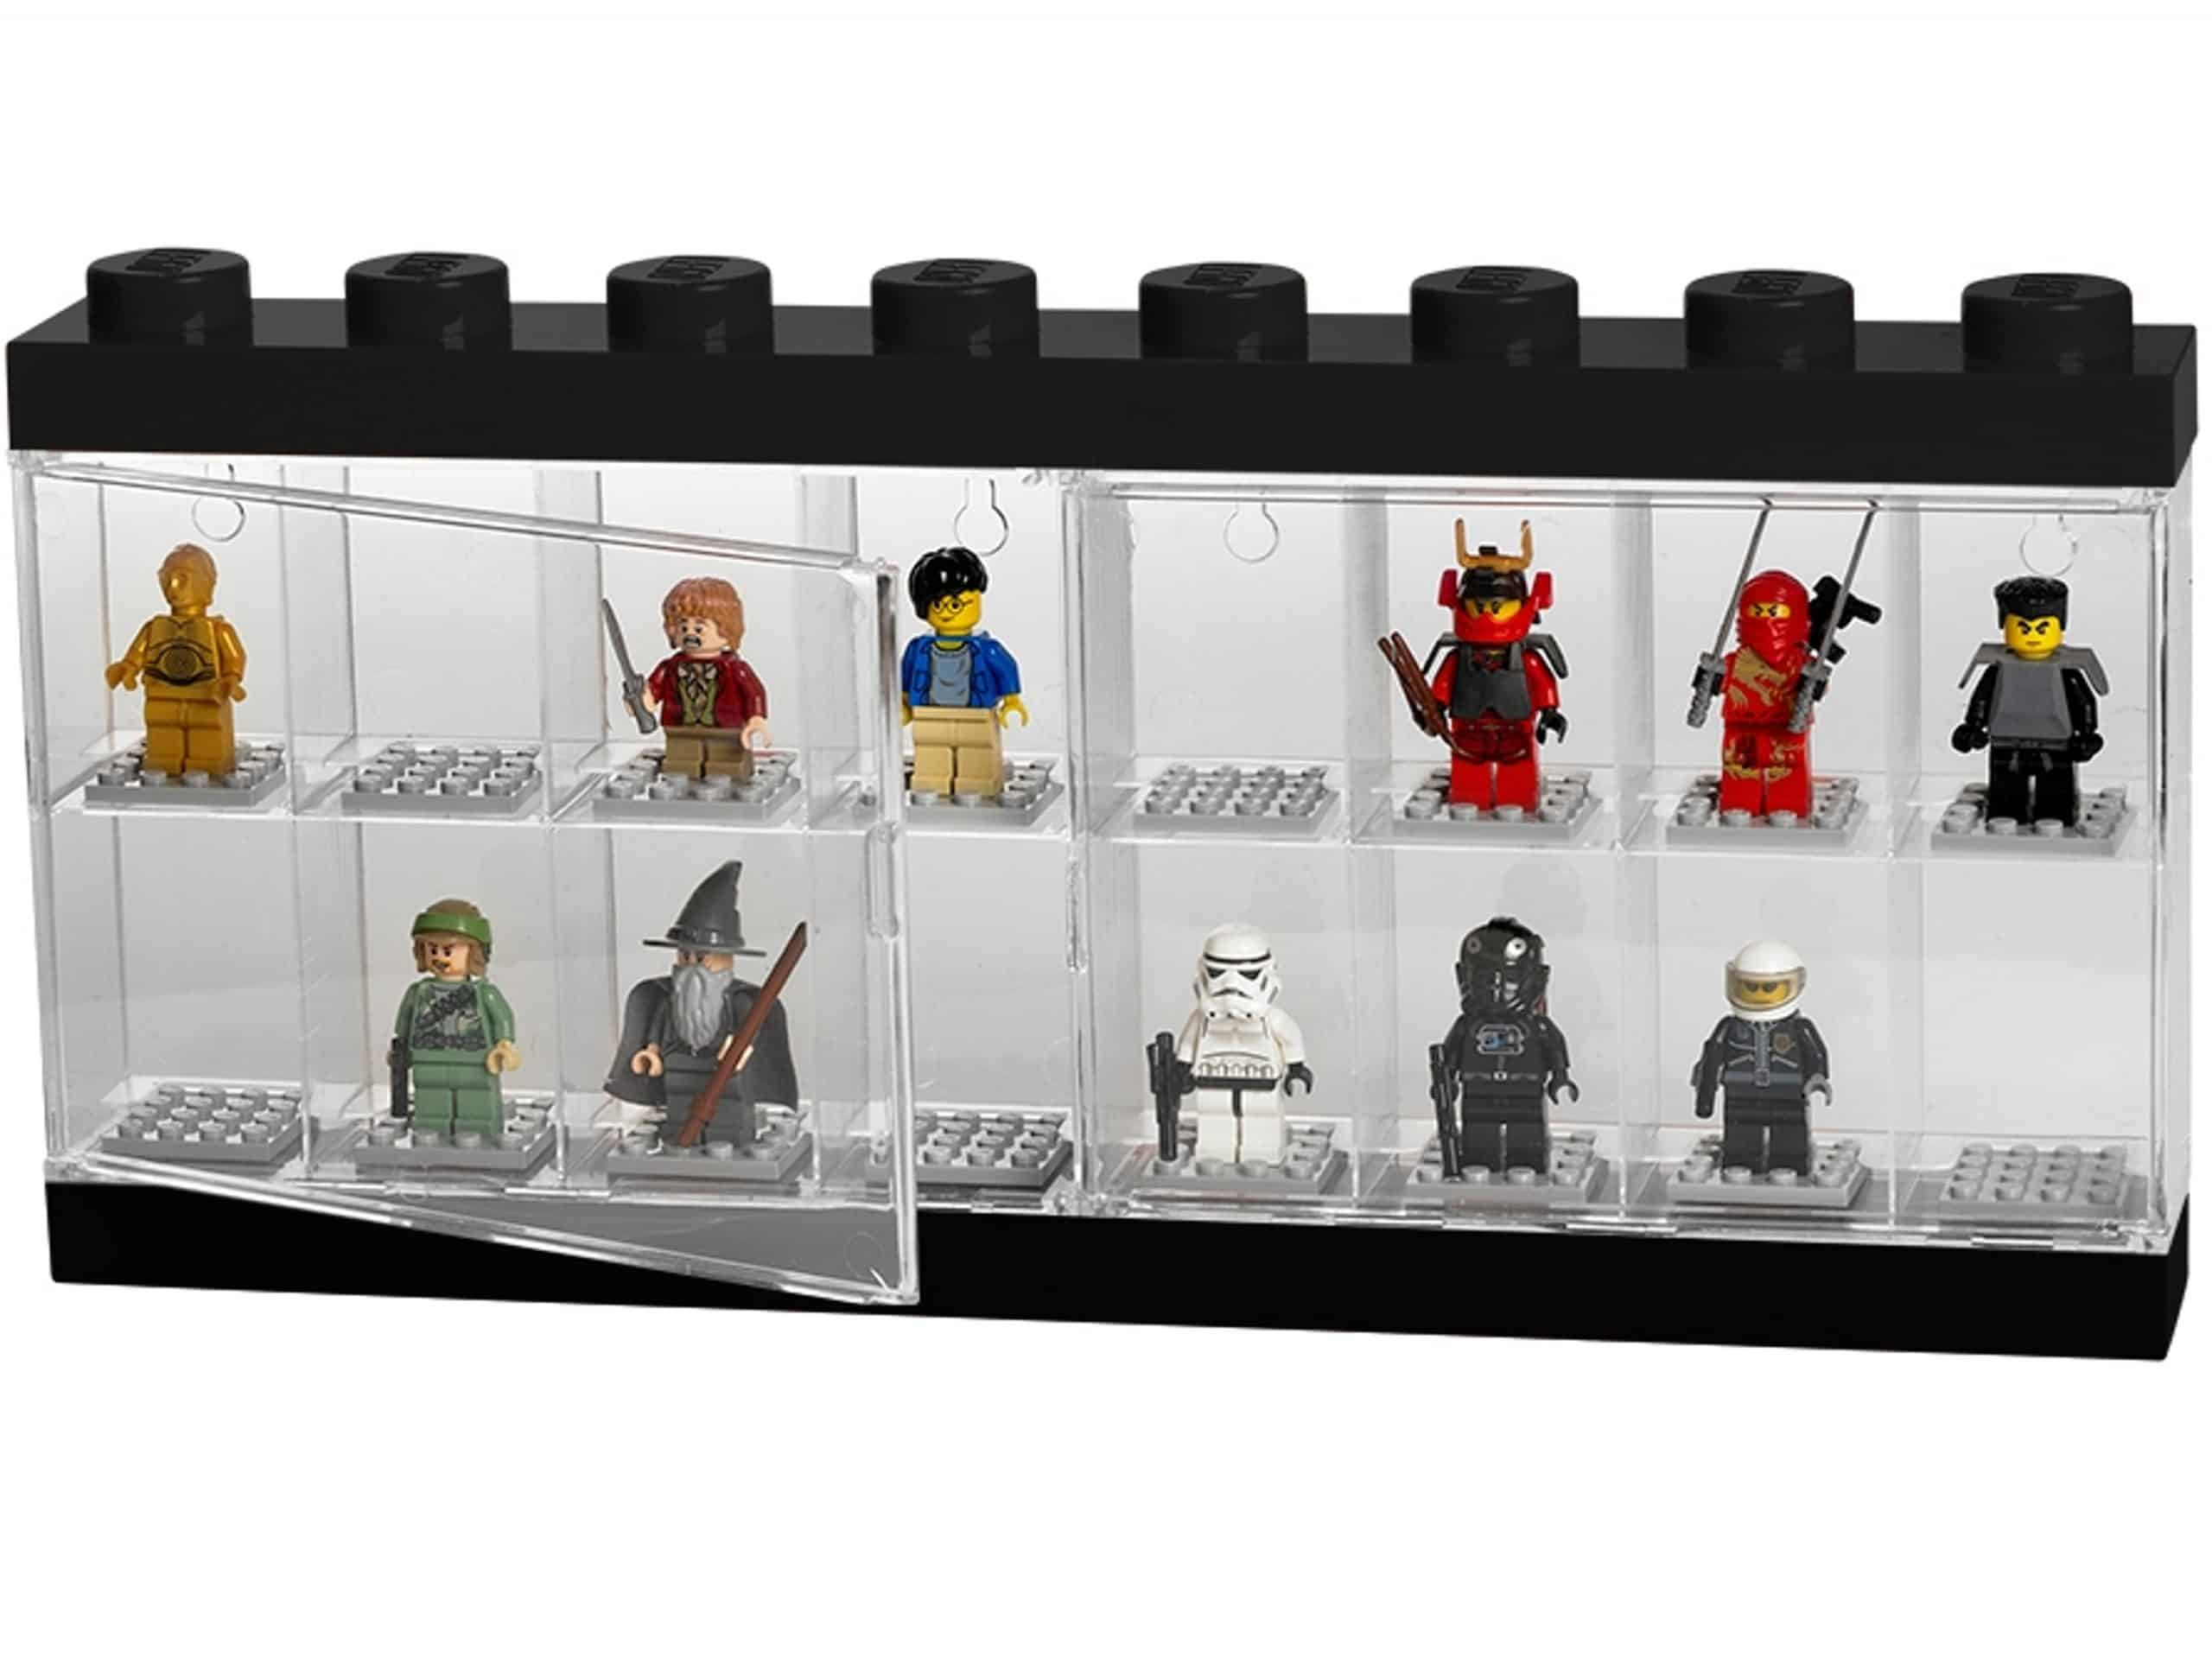 lego 5005375 schaukasten fur 16 minifiguren scaled